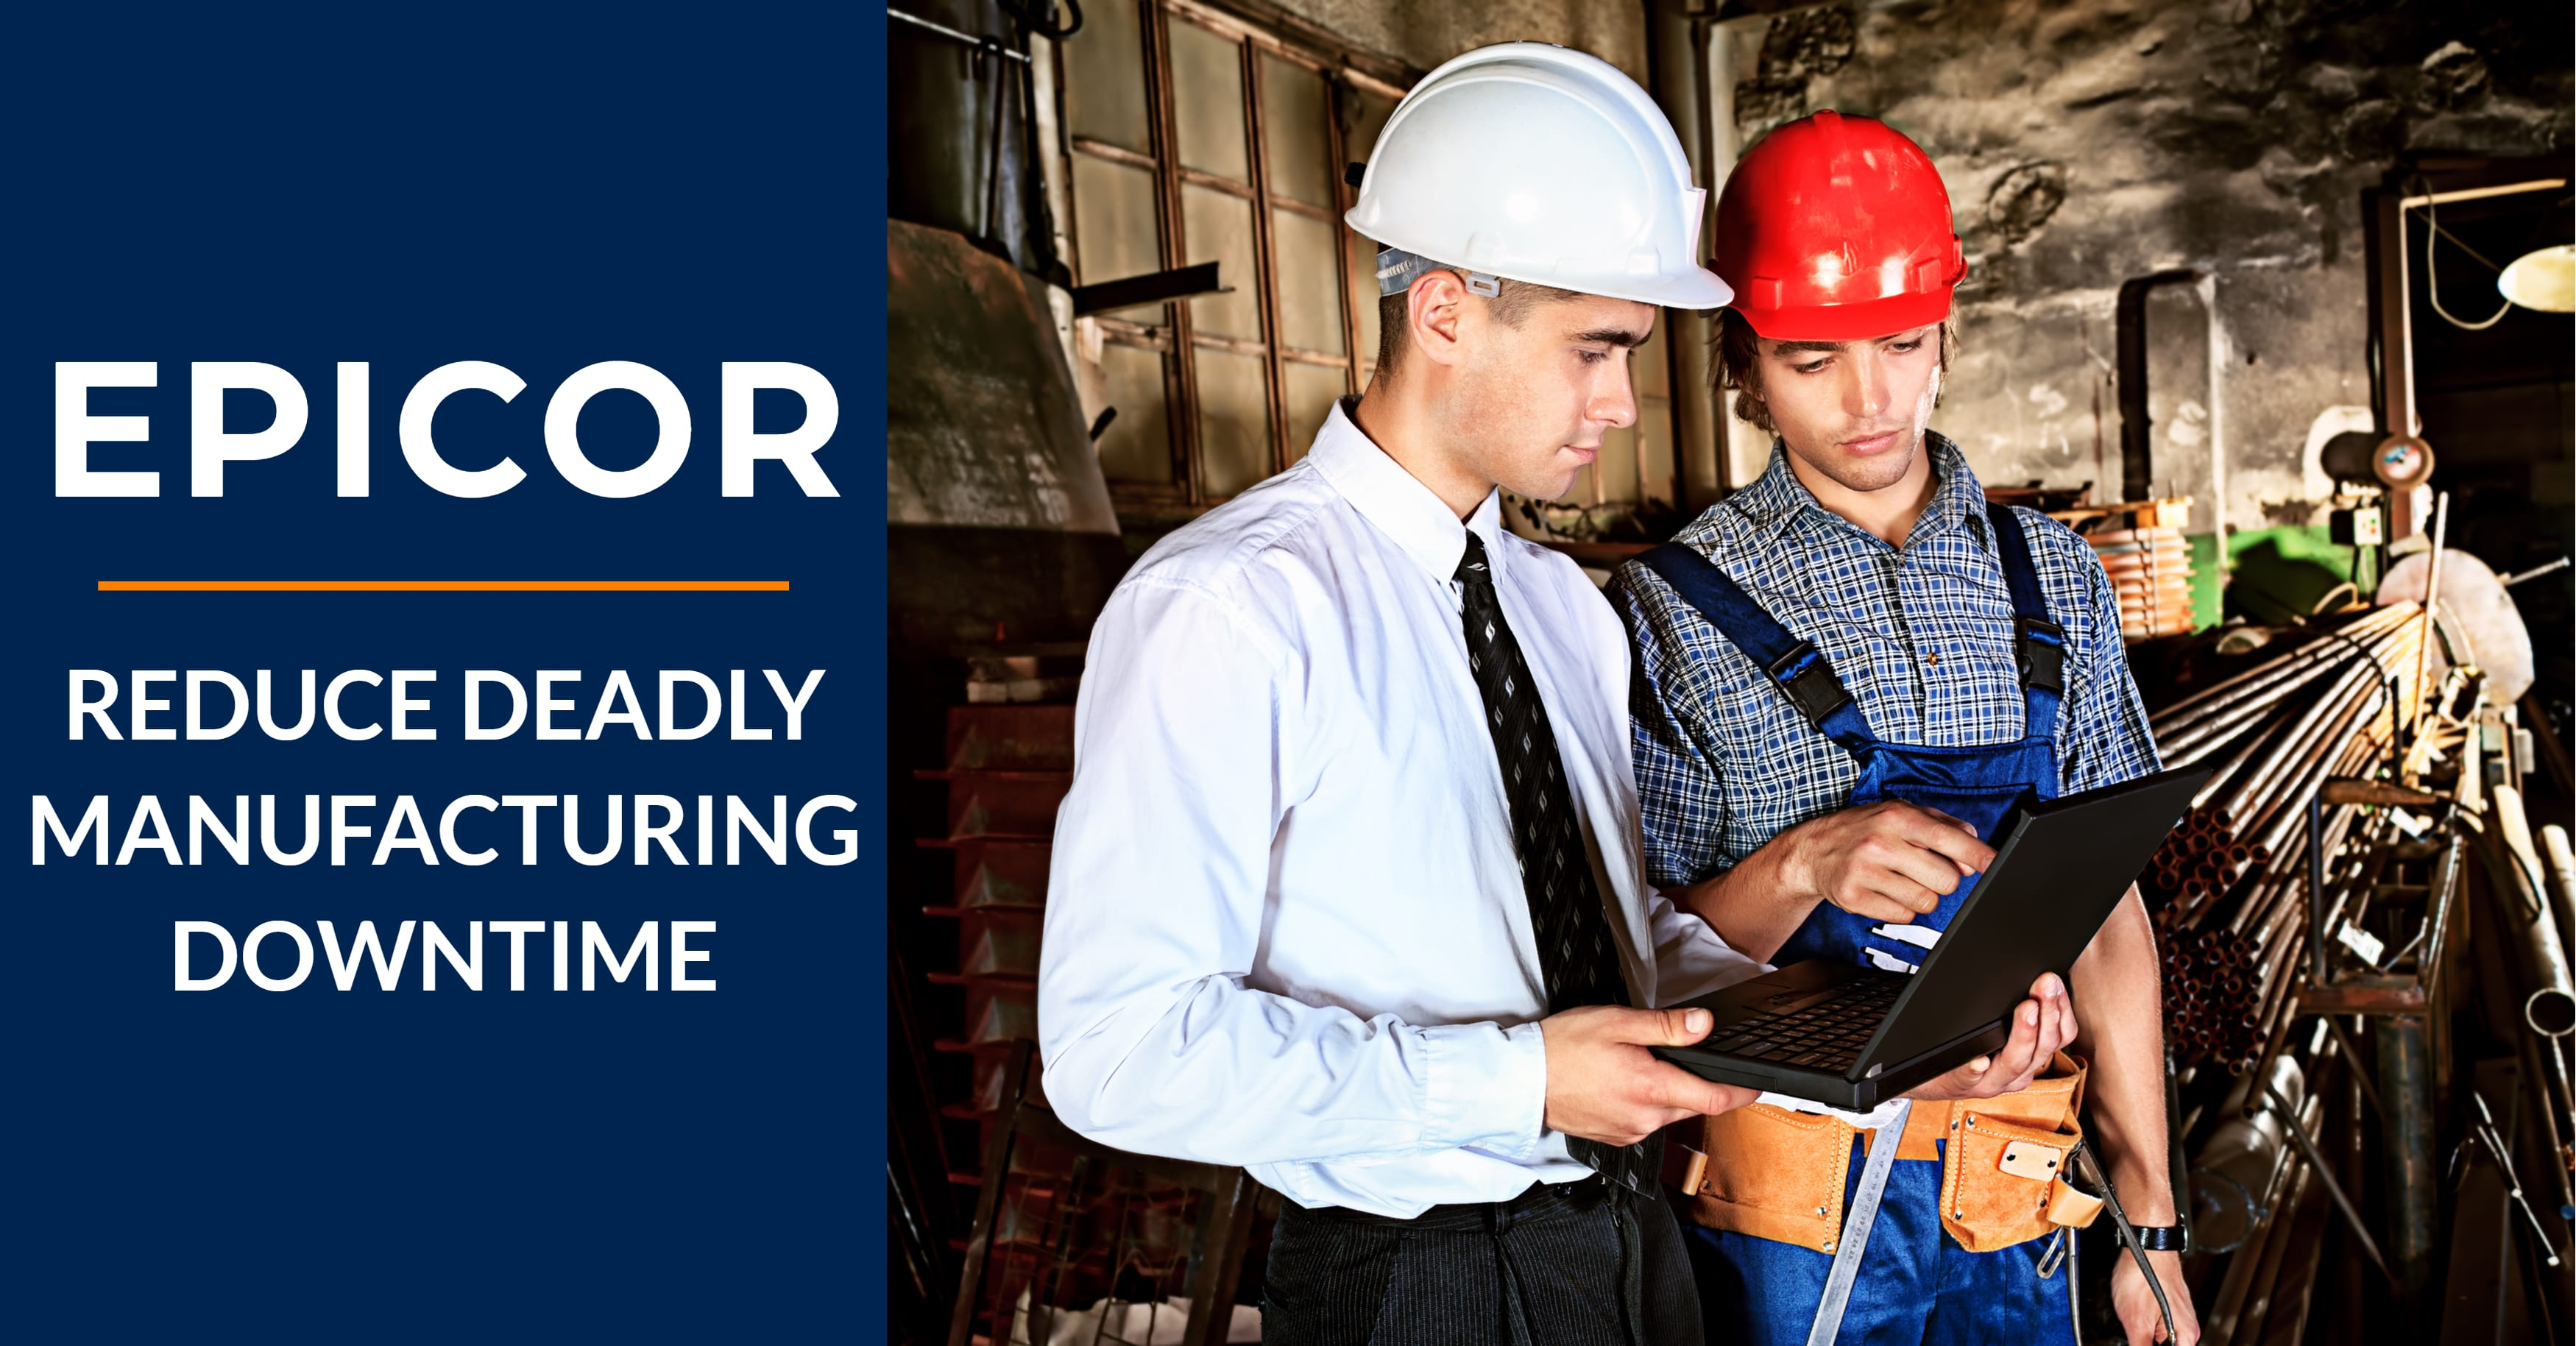 Epicor ERP Reduces Deadly Manufacturing Downtime